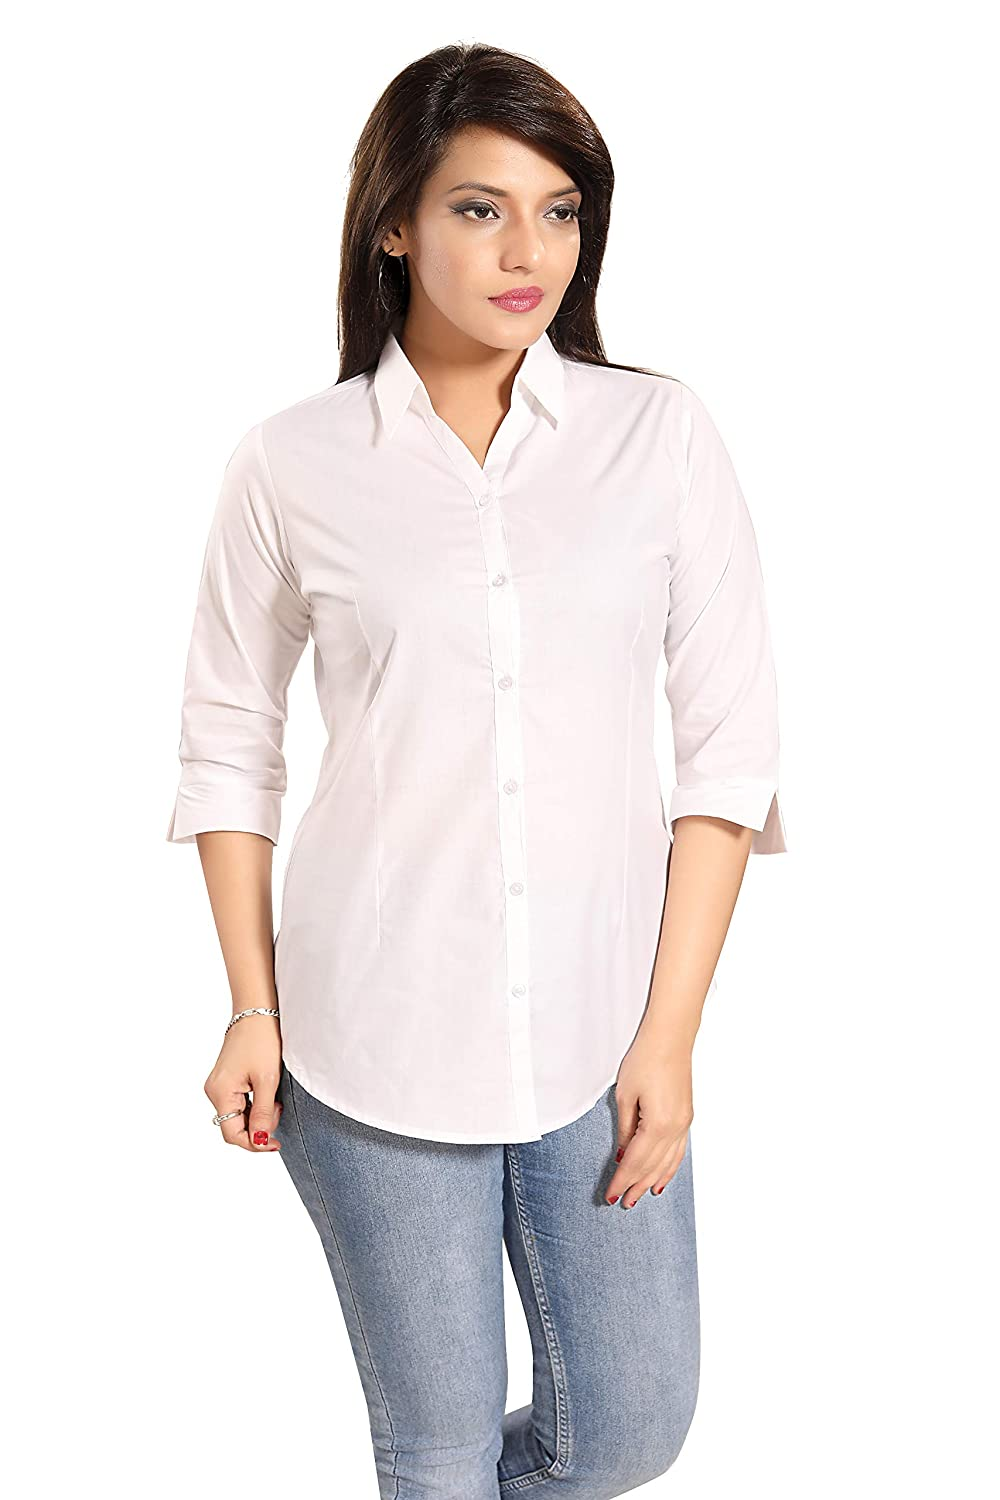 NEW Ladies Plum Blouse RRP £21 Formal Casual Business  !!BUY ONE GET ONE FREE!!